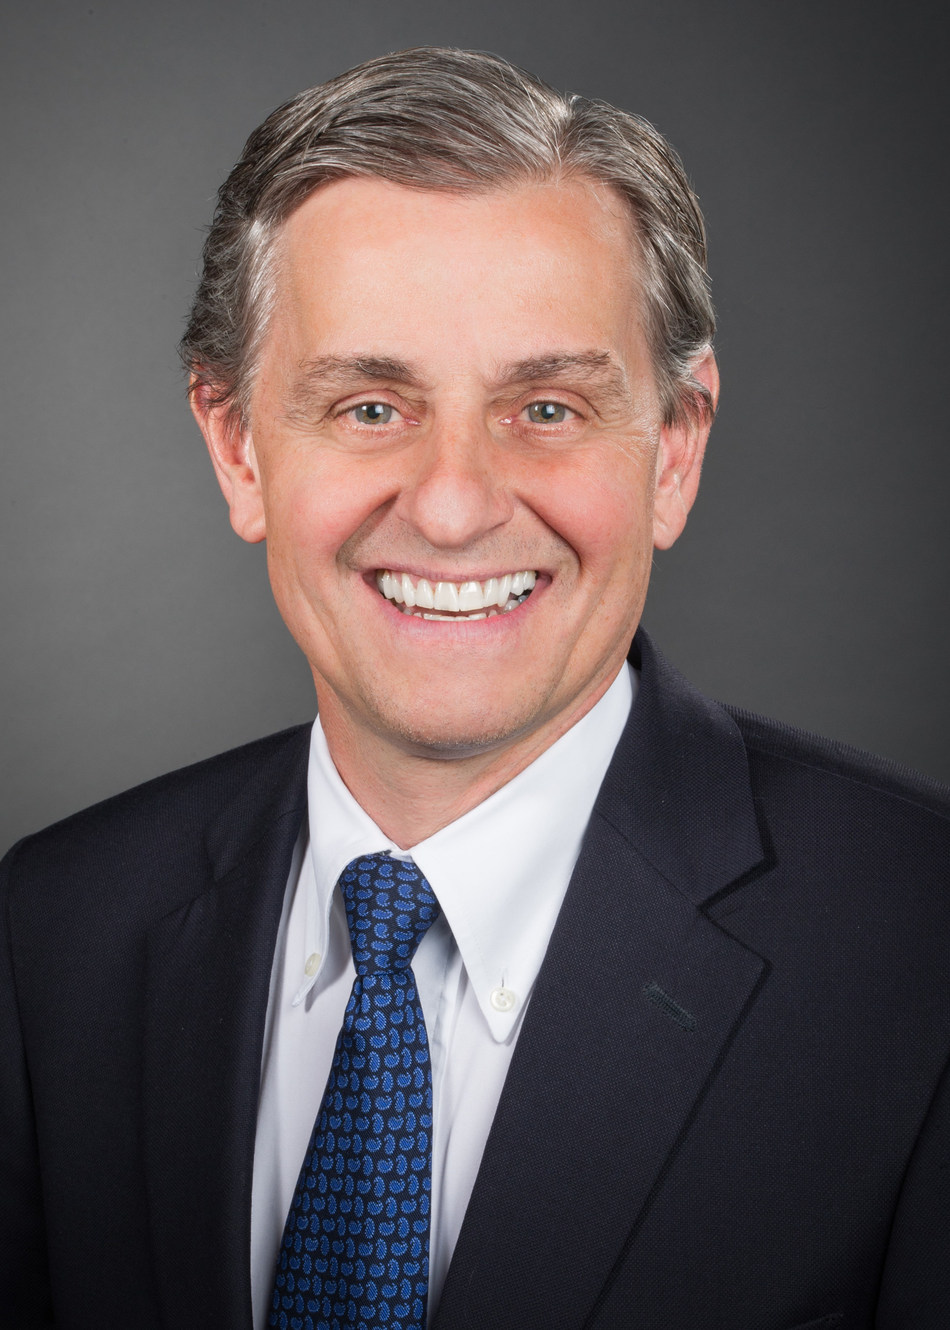 Kevin J. Tracey, president and CEO of the Feinstein Institute and co-author on the paper